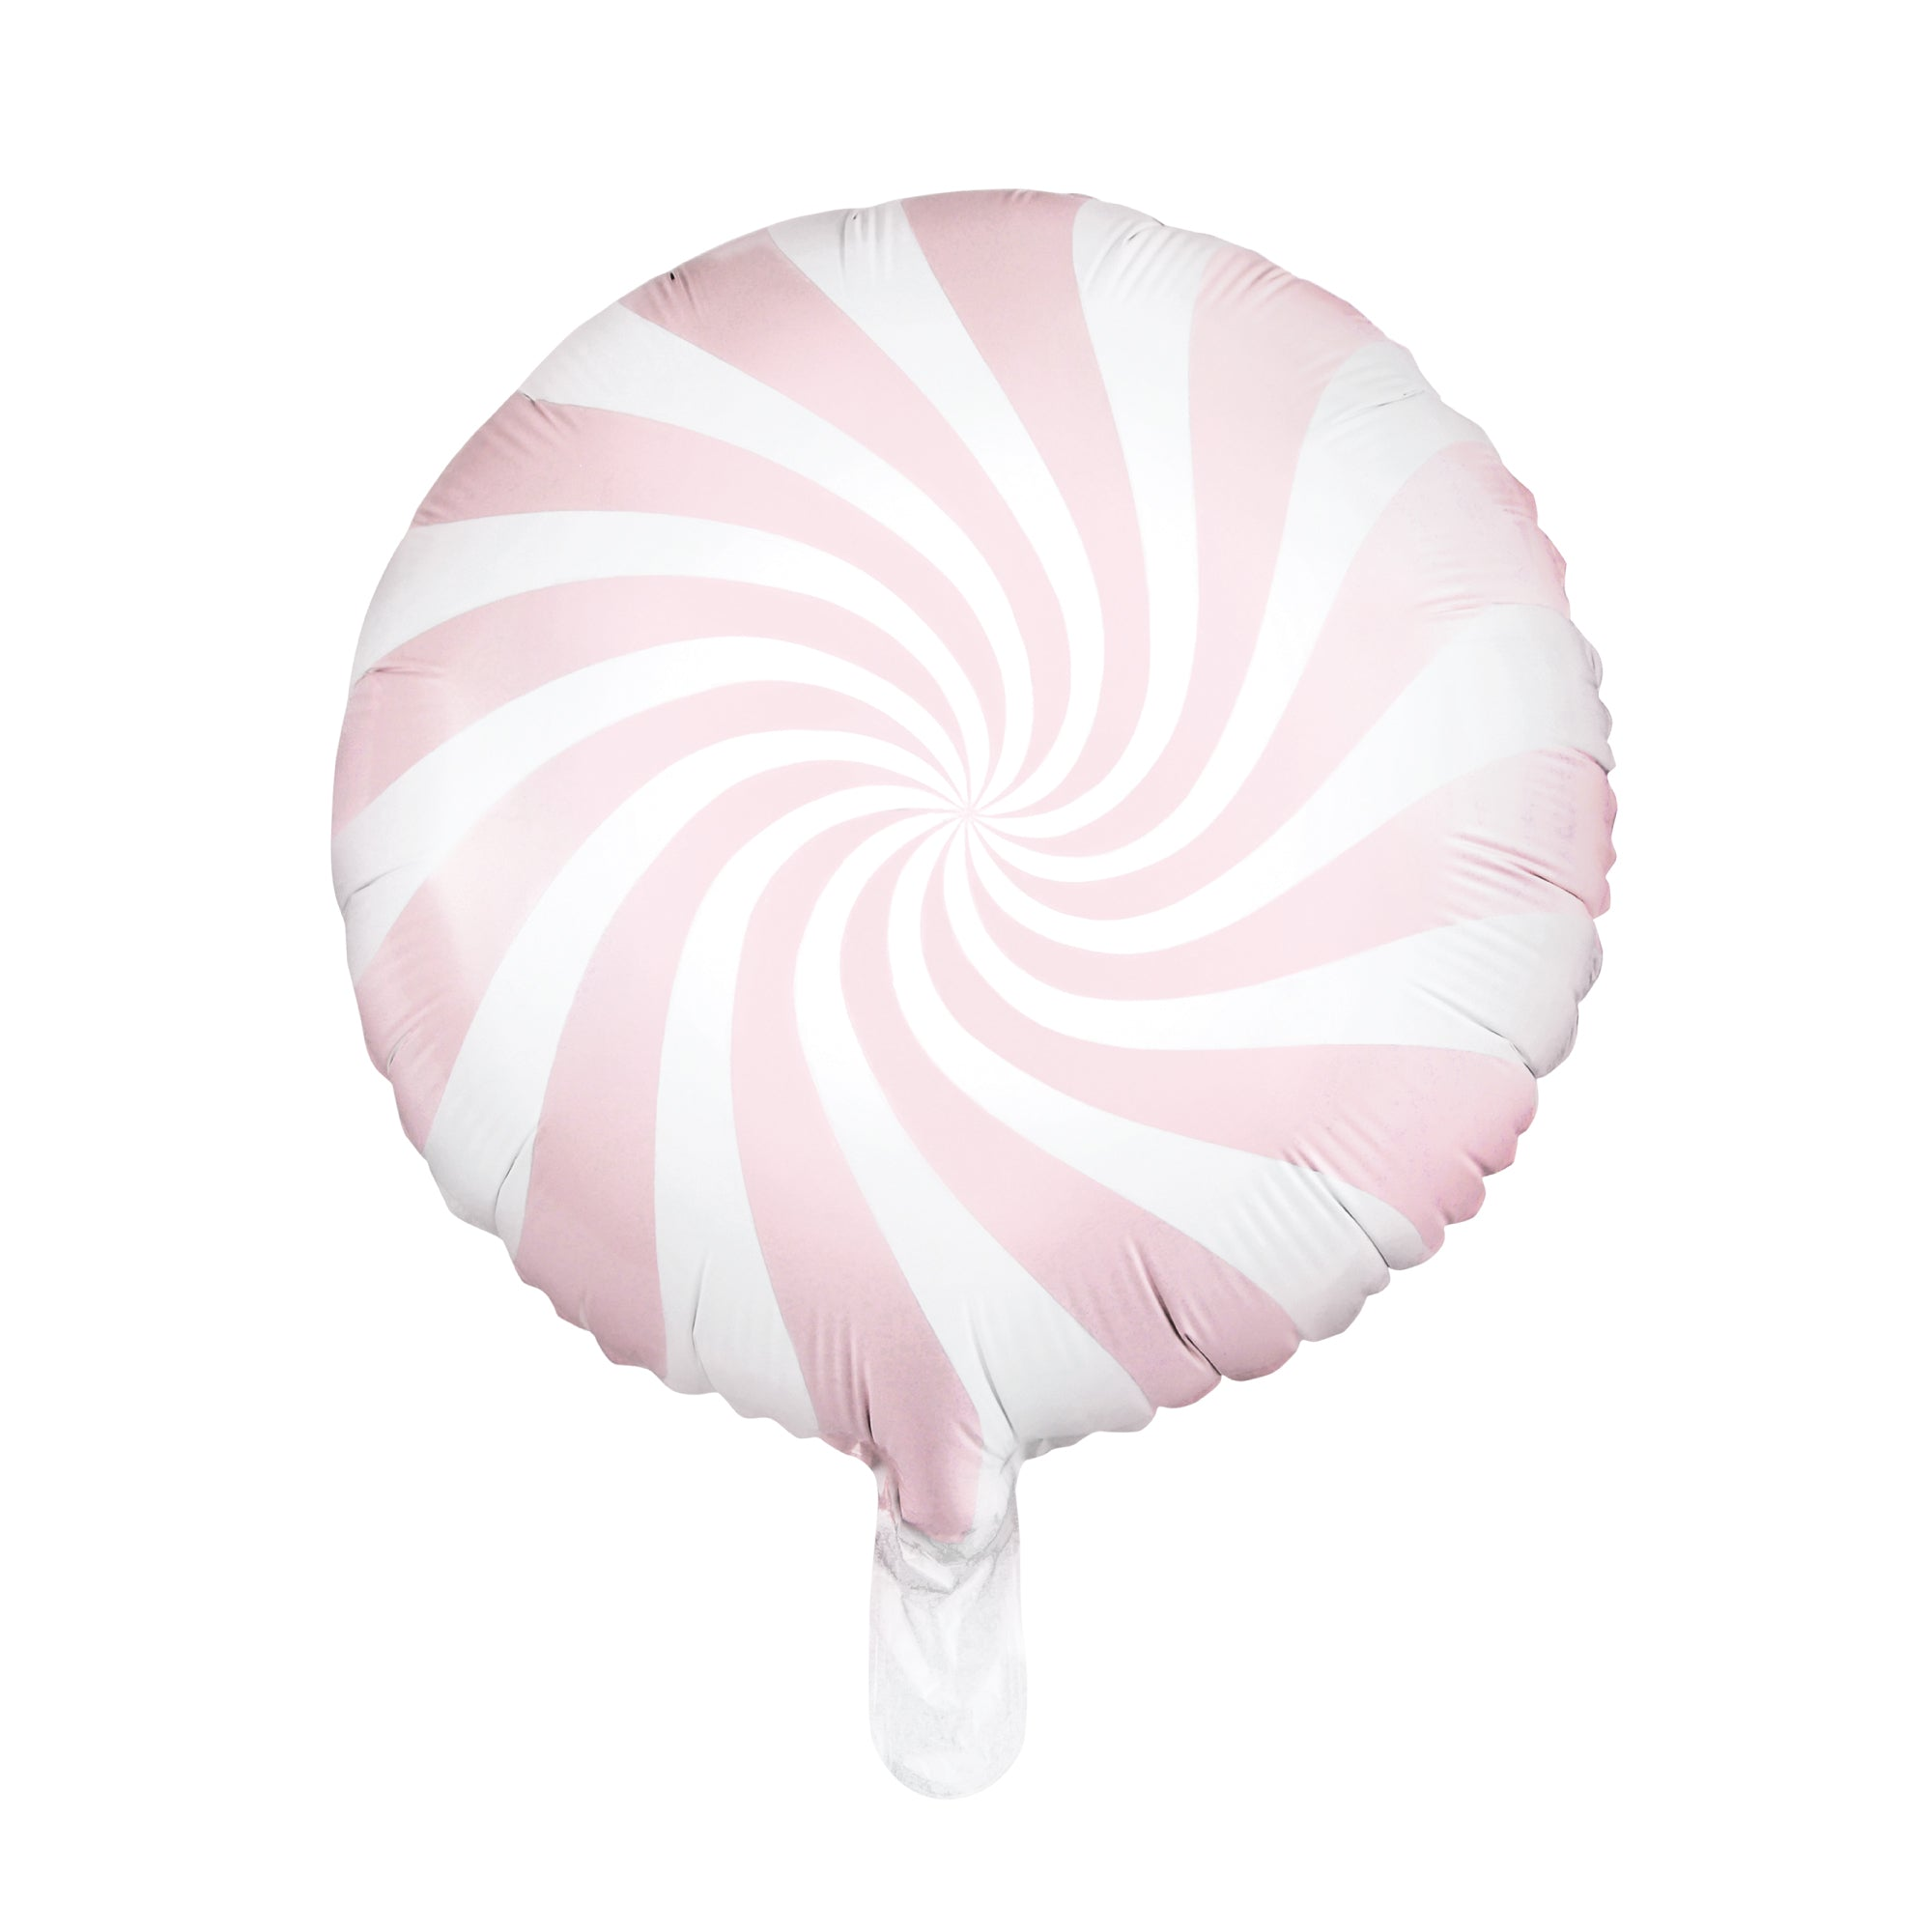 Light Pink Swirly Lollipop Foil Balloon 18"